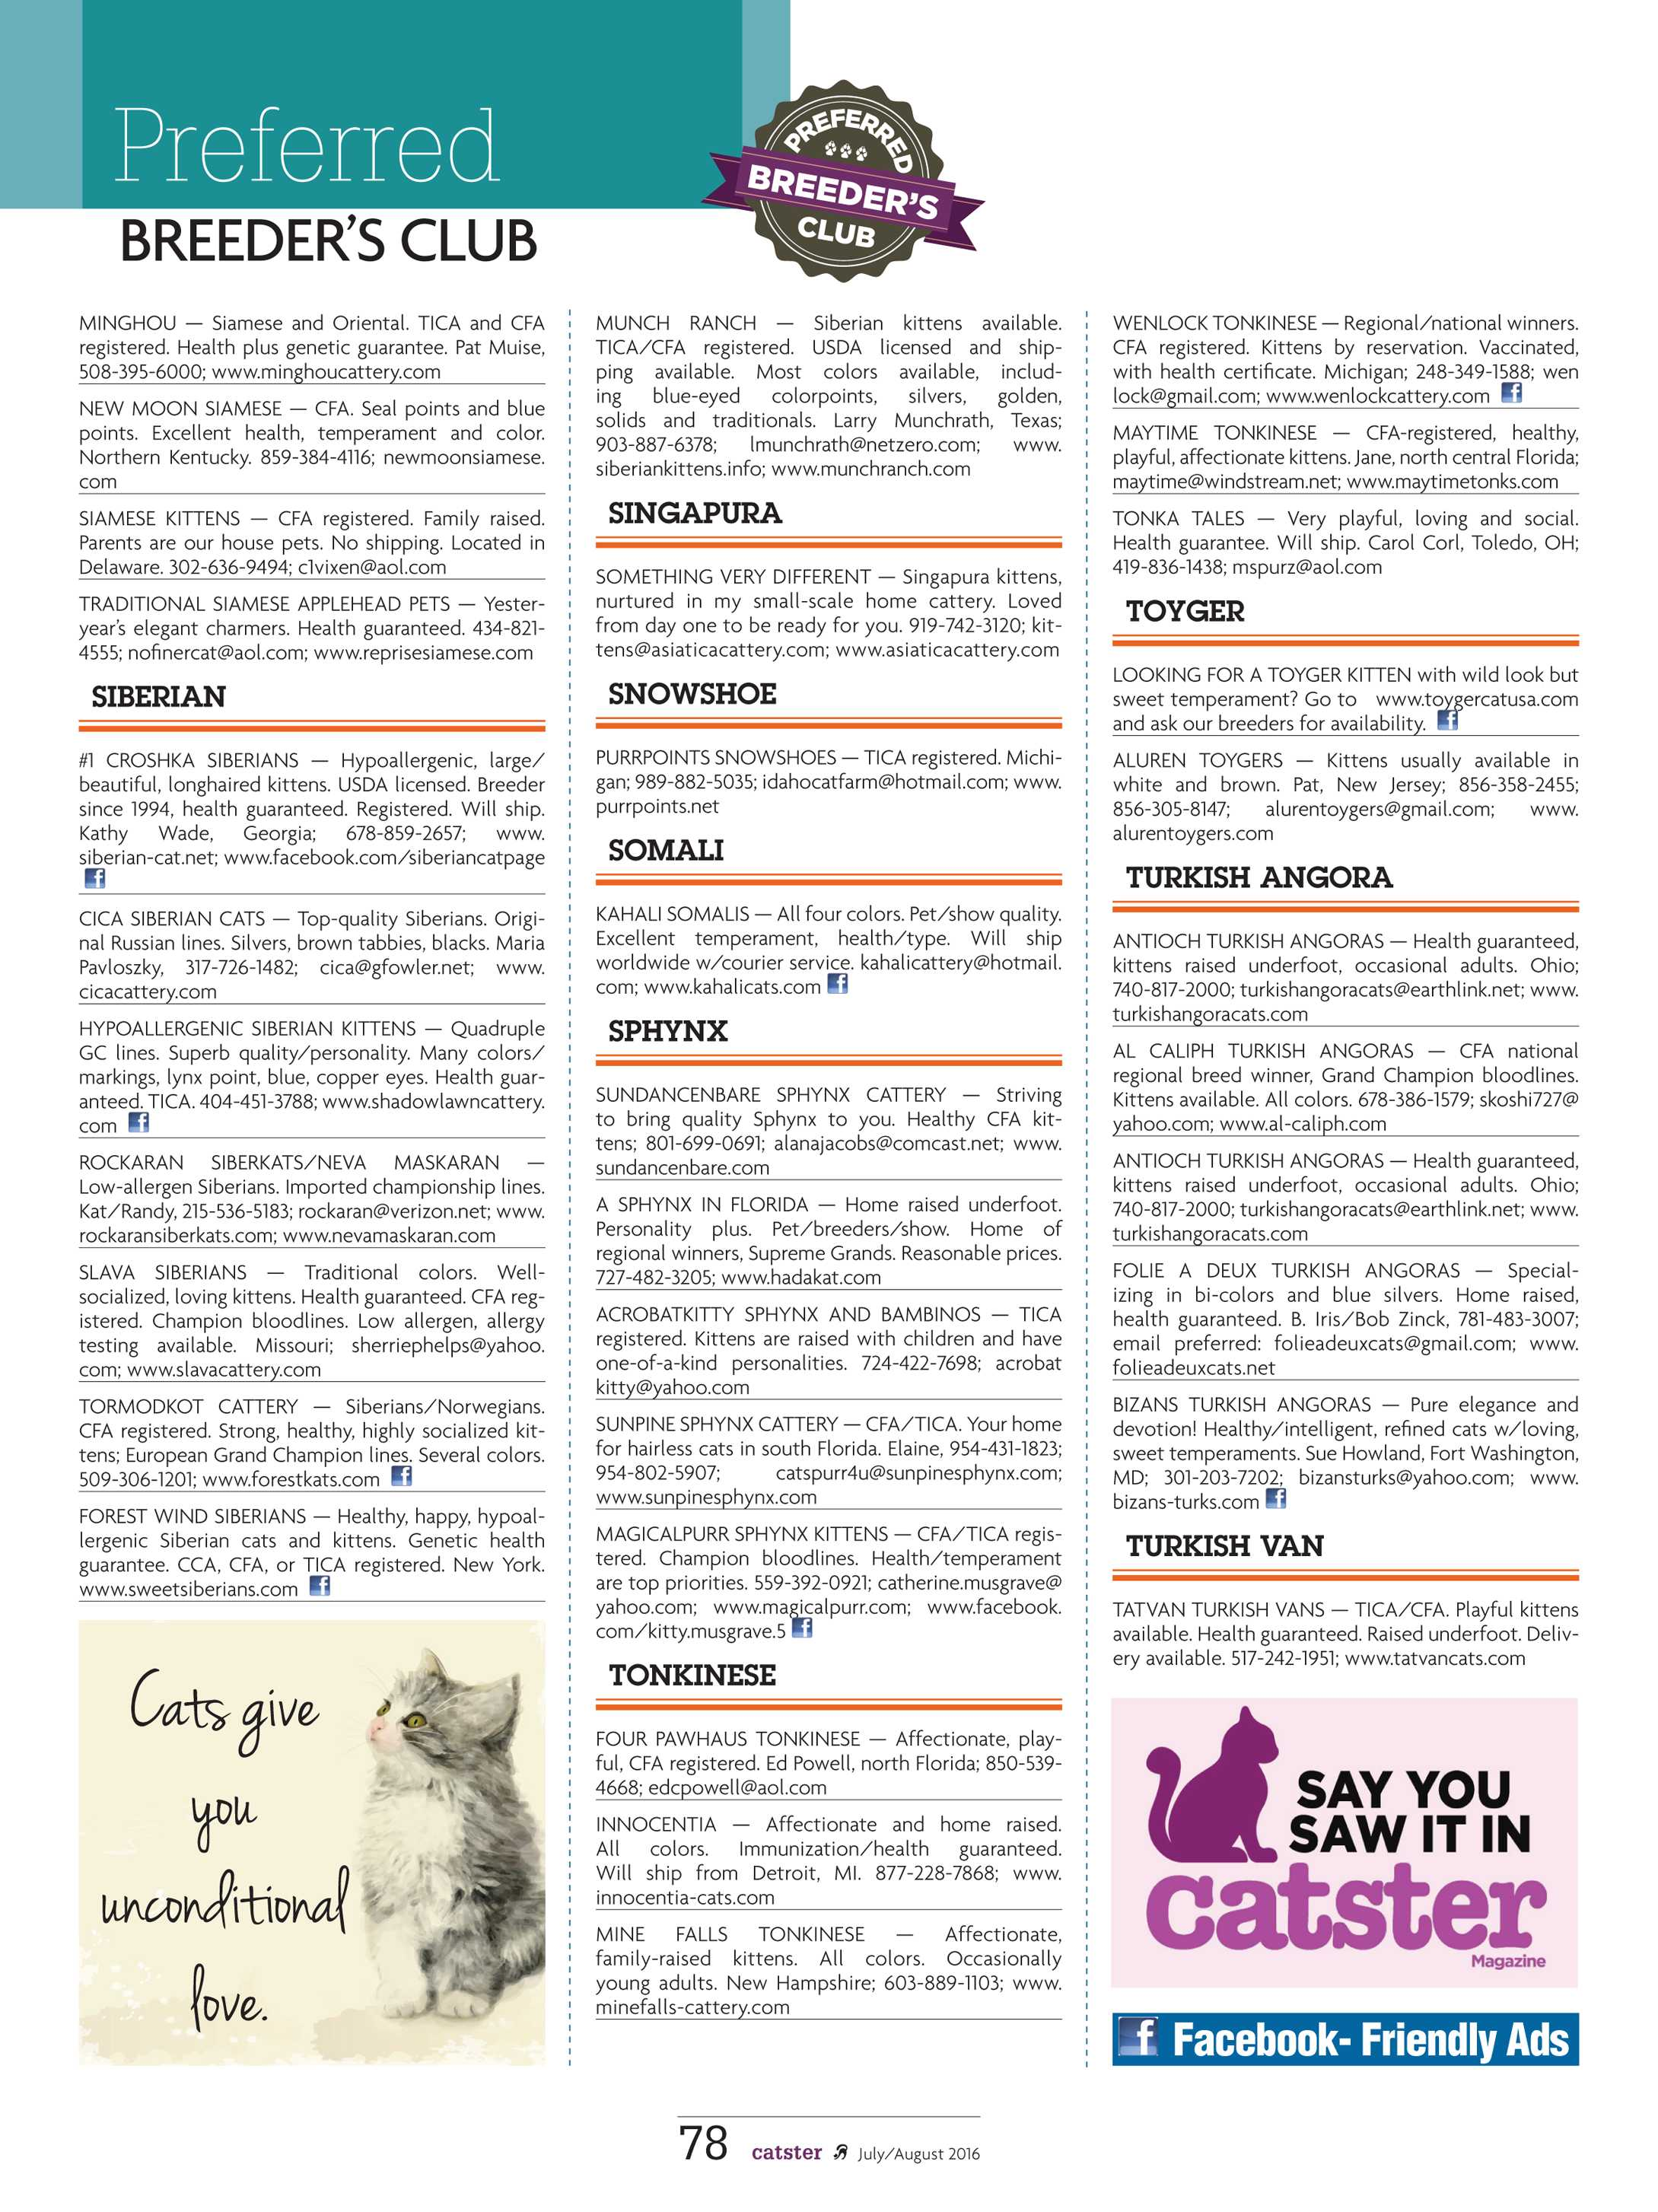 Catster Magazine - July/August 2016 - page 78